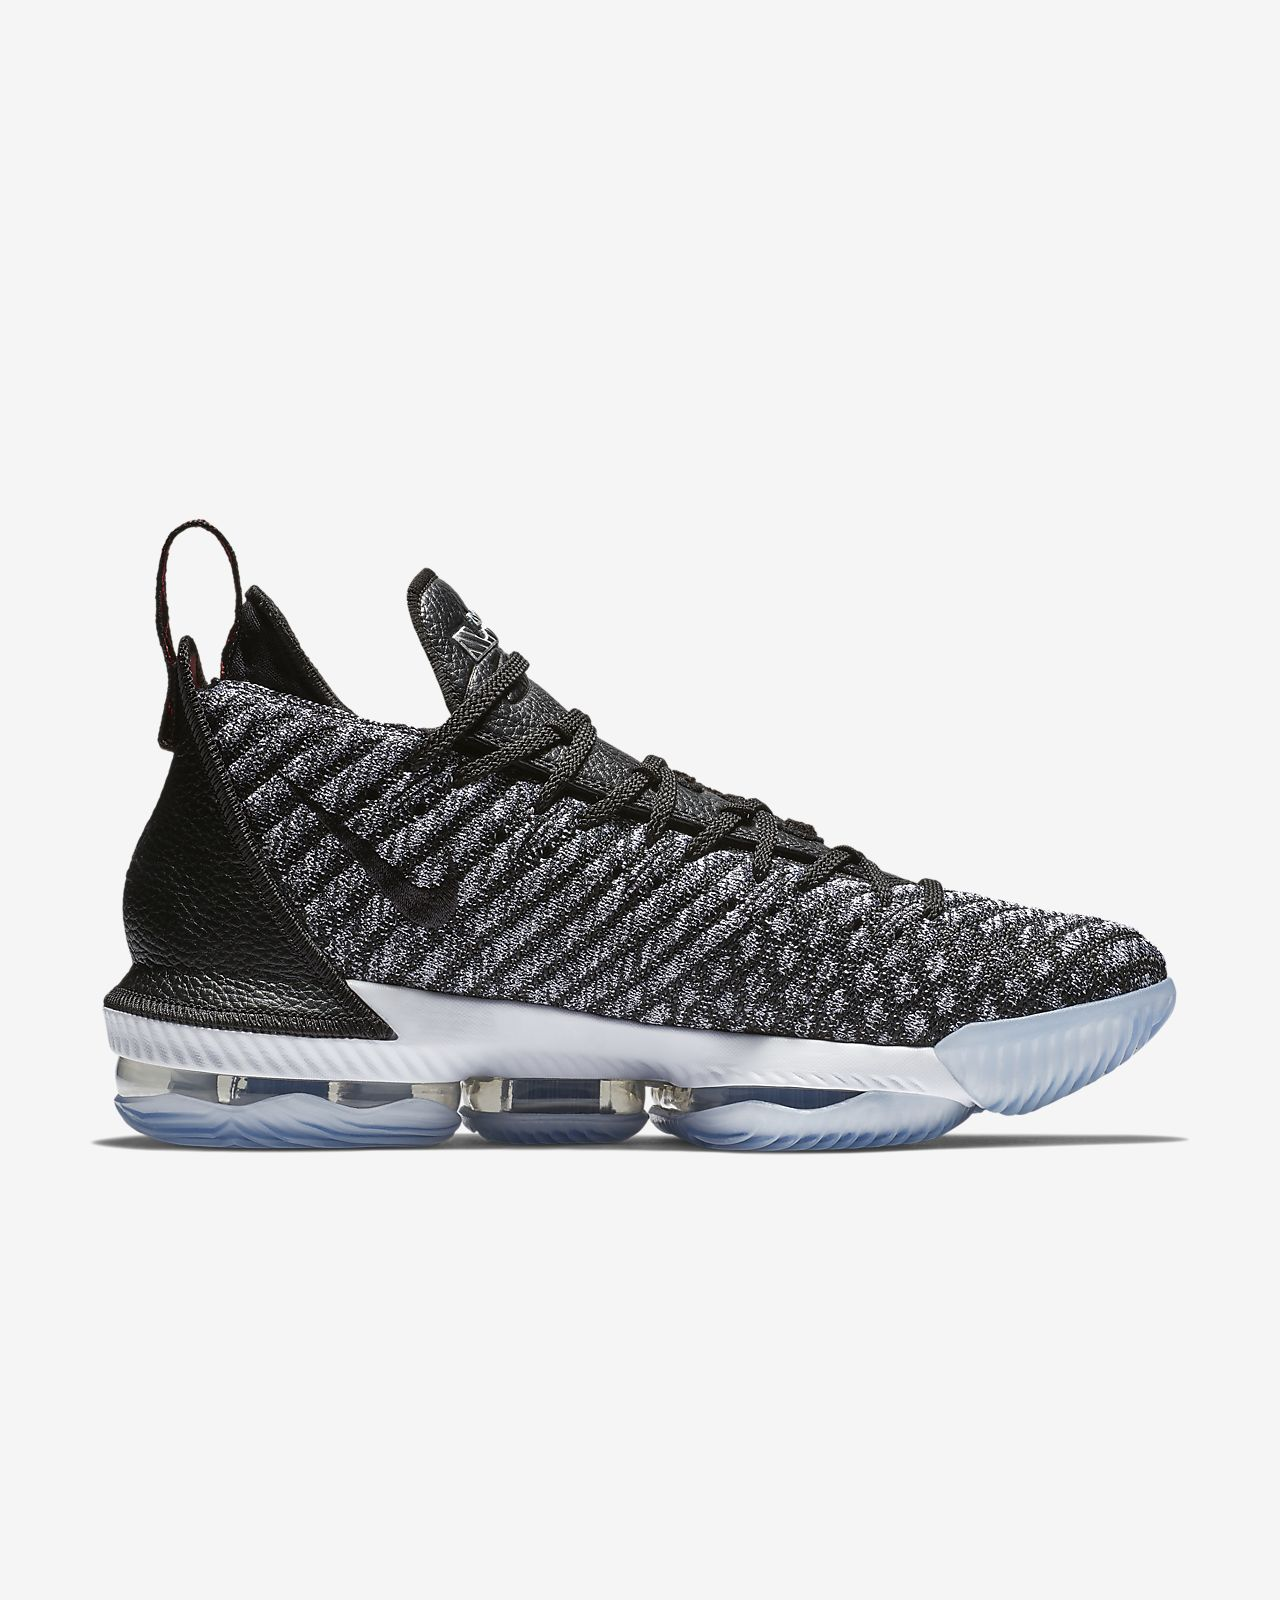 95c6b408a35478 Low Resolution LeBron 16 Basketball Shoe LeBron 16 Basketball Shoe